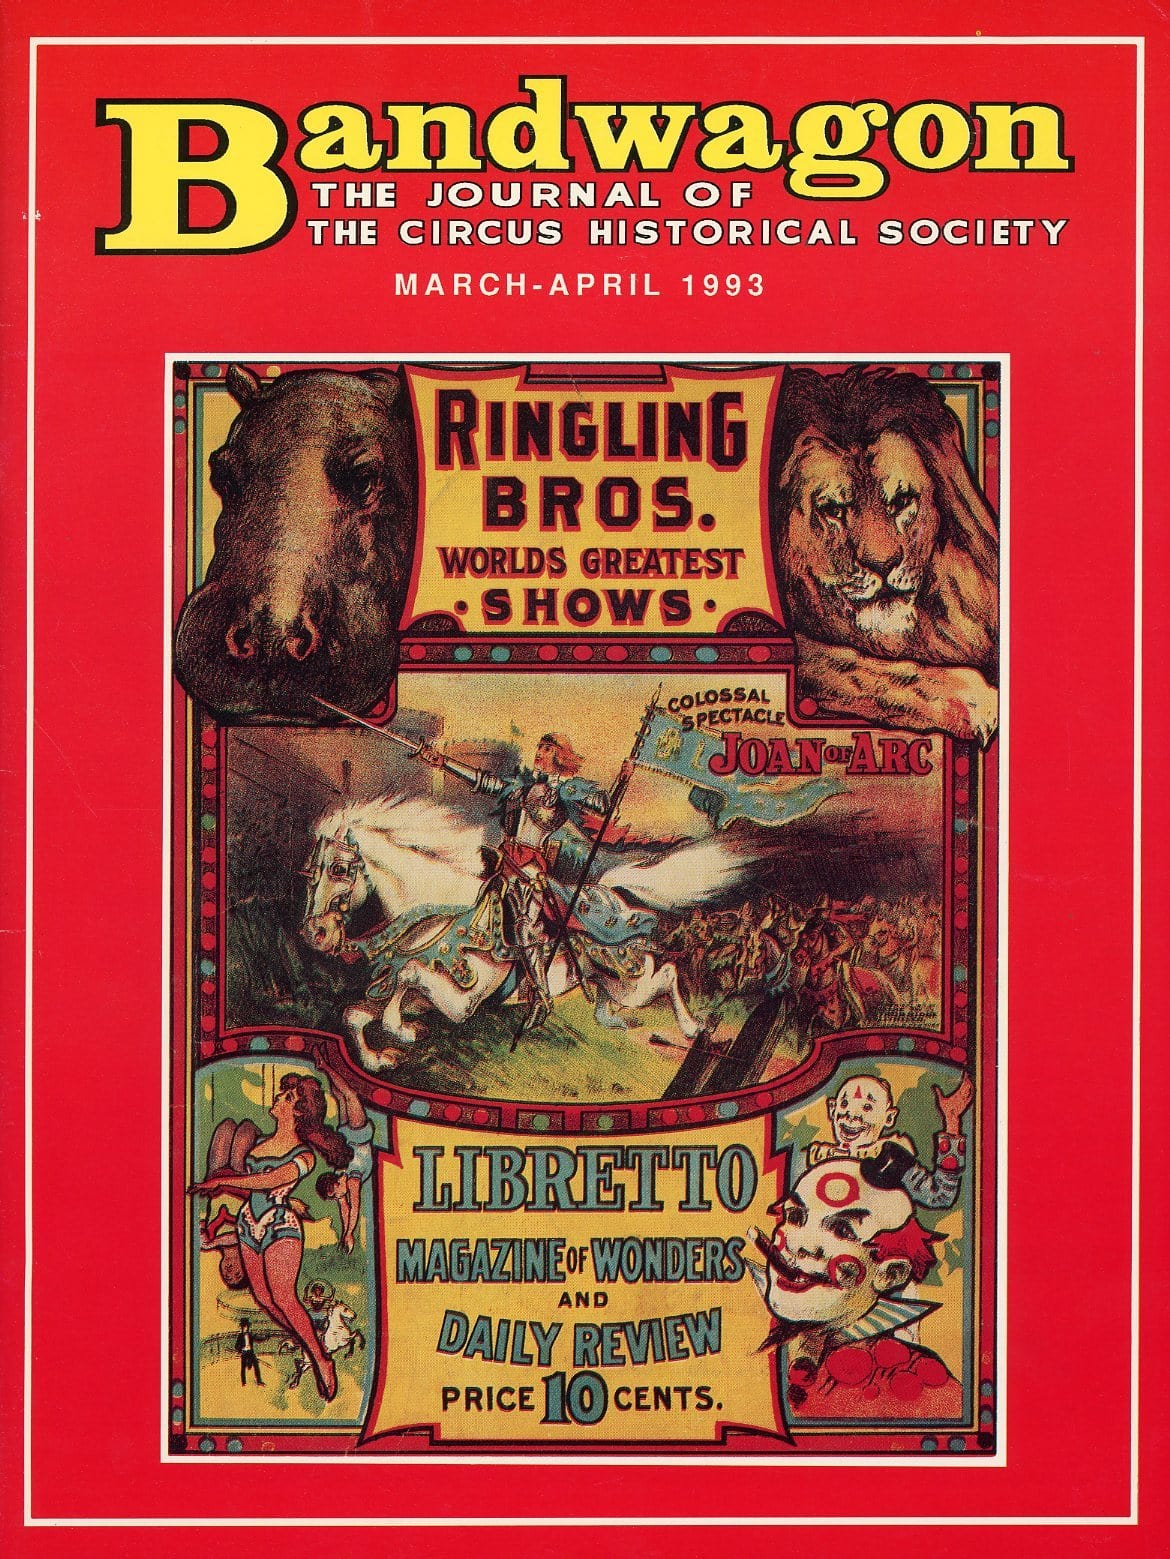 Bandwagon Magazine Back Issue - March/April 1993 - Circus Memorabilia